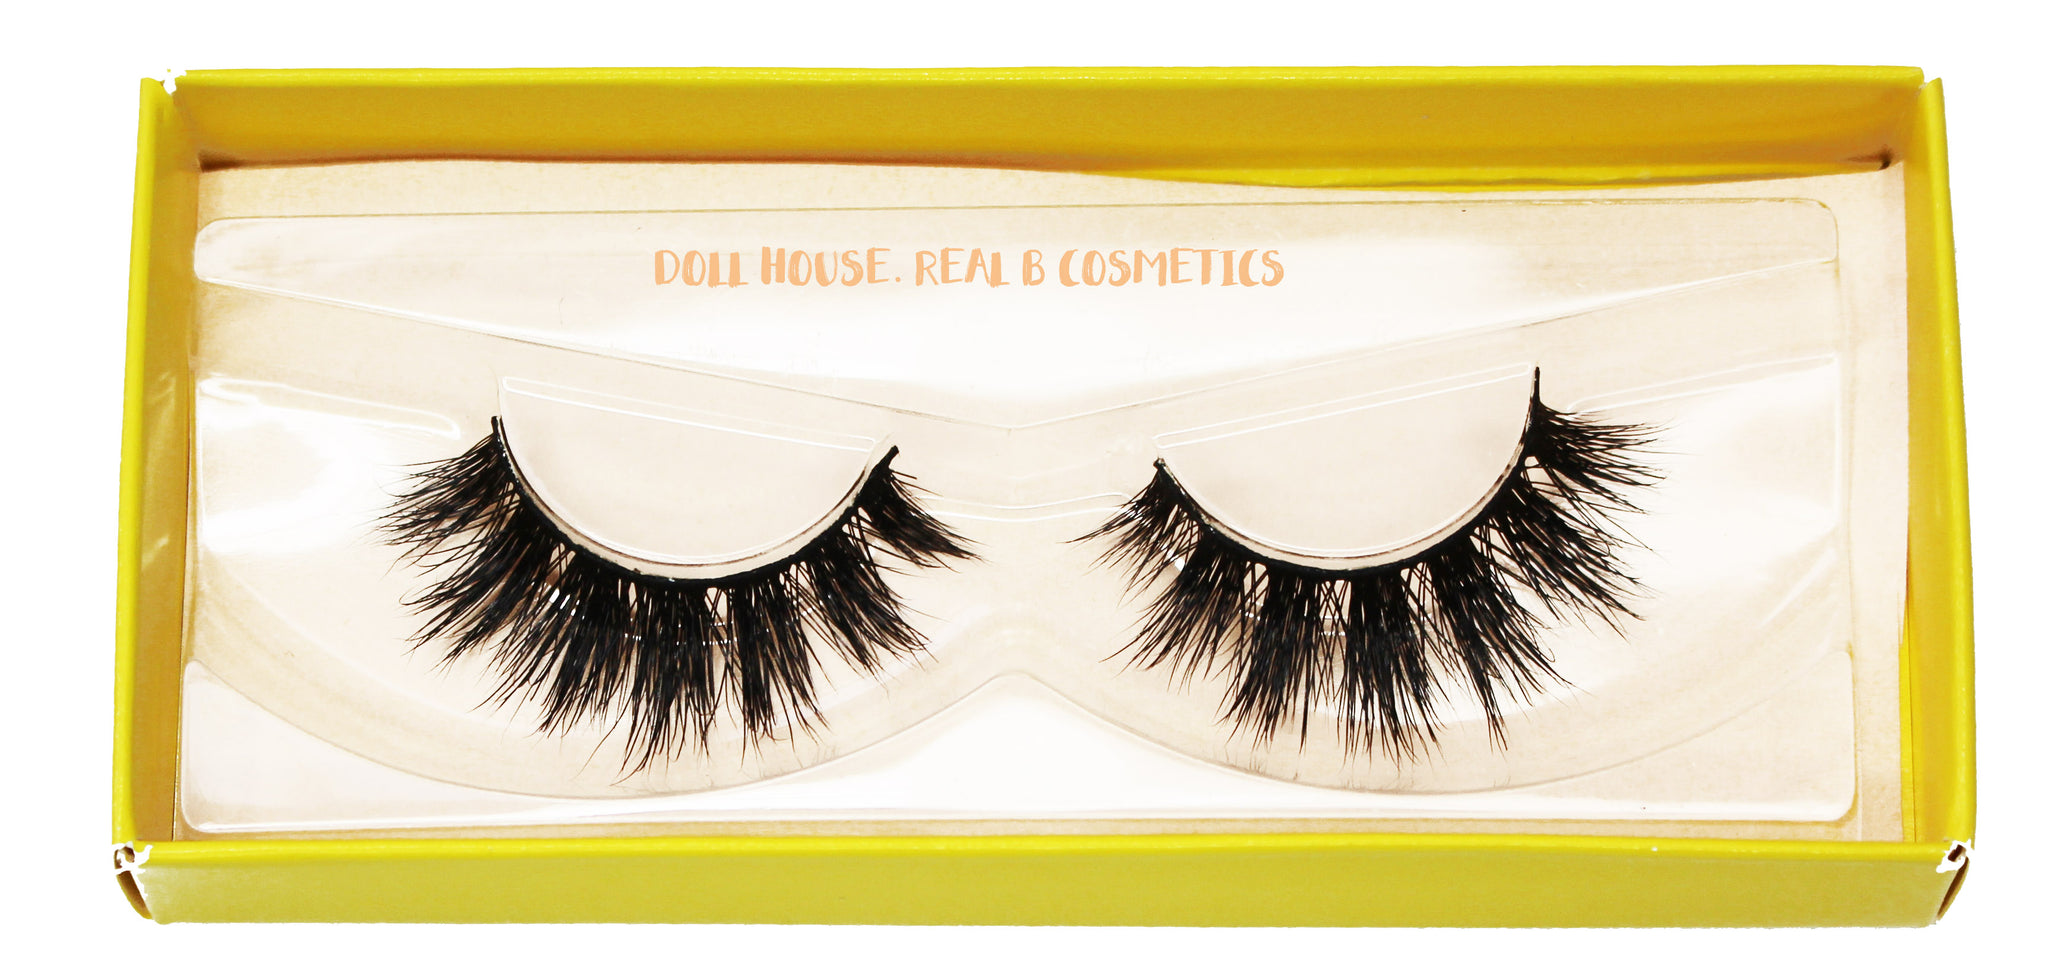 DOLL HOUSE FALSE LASHES